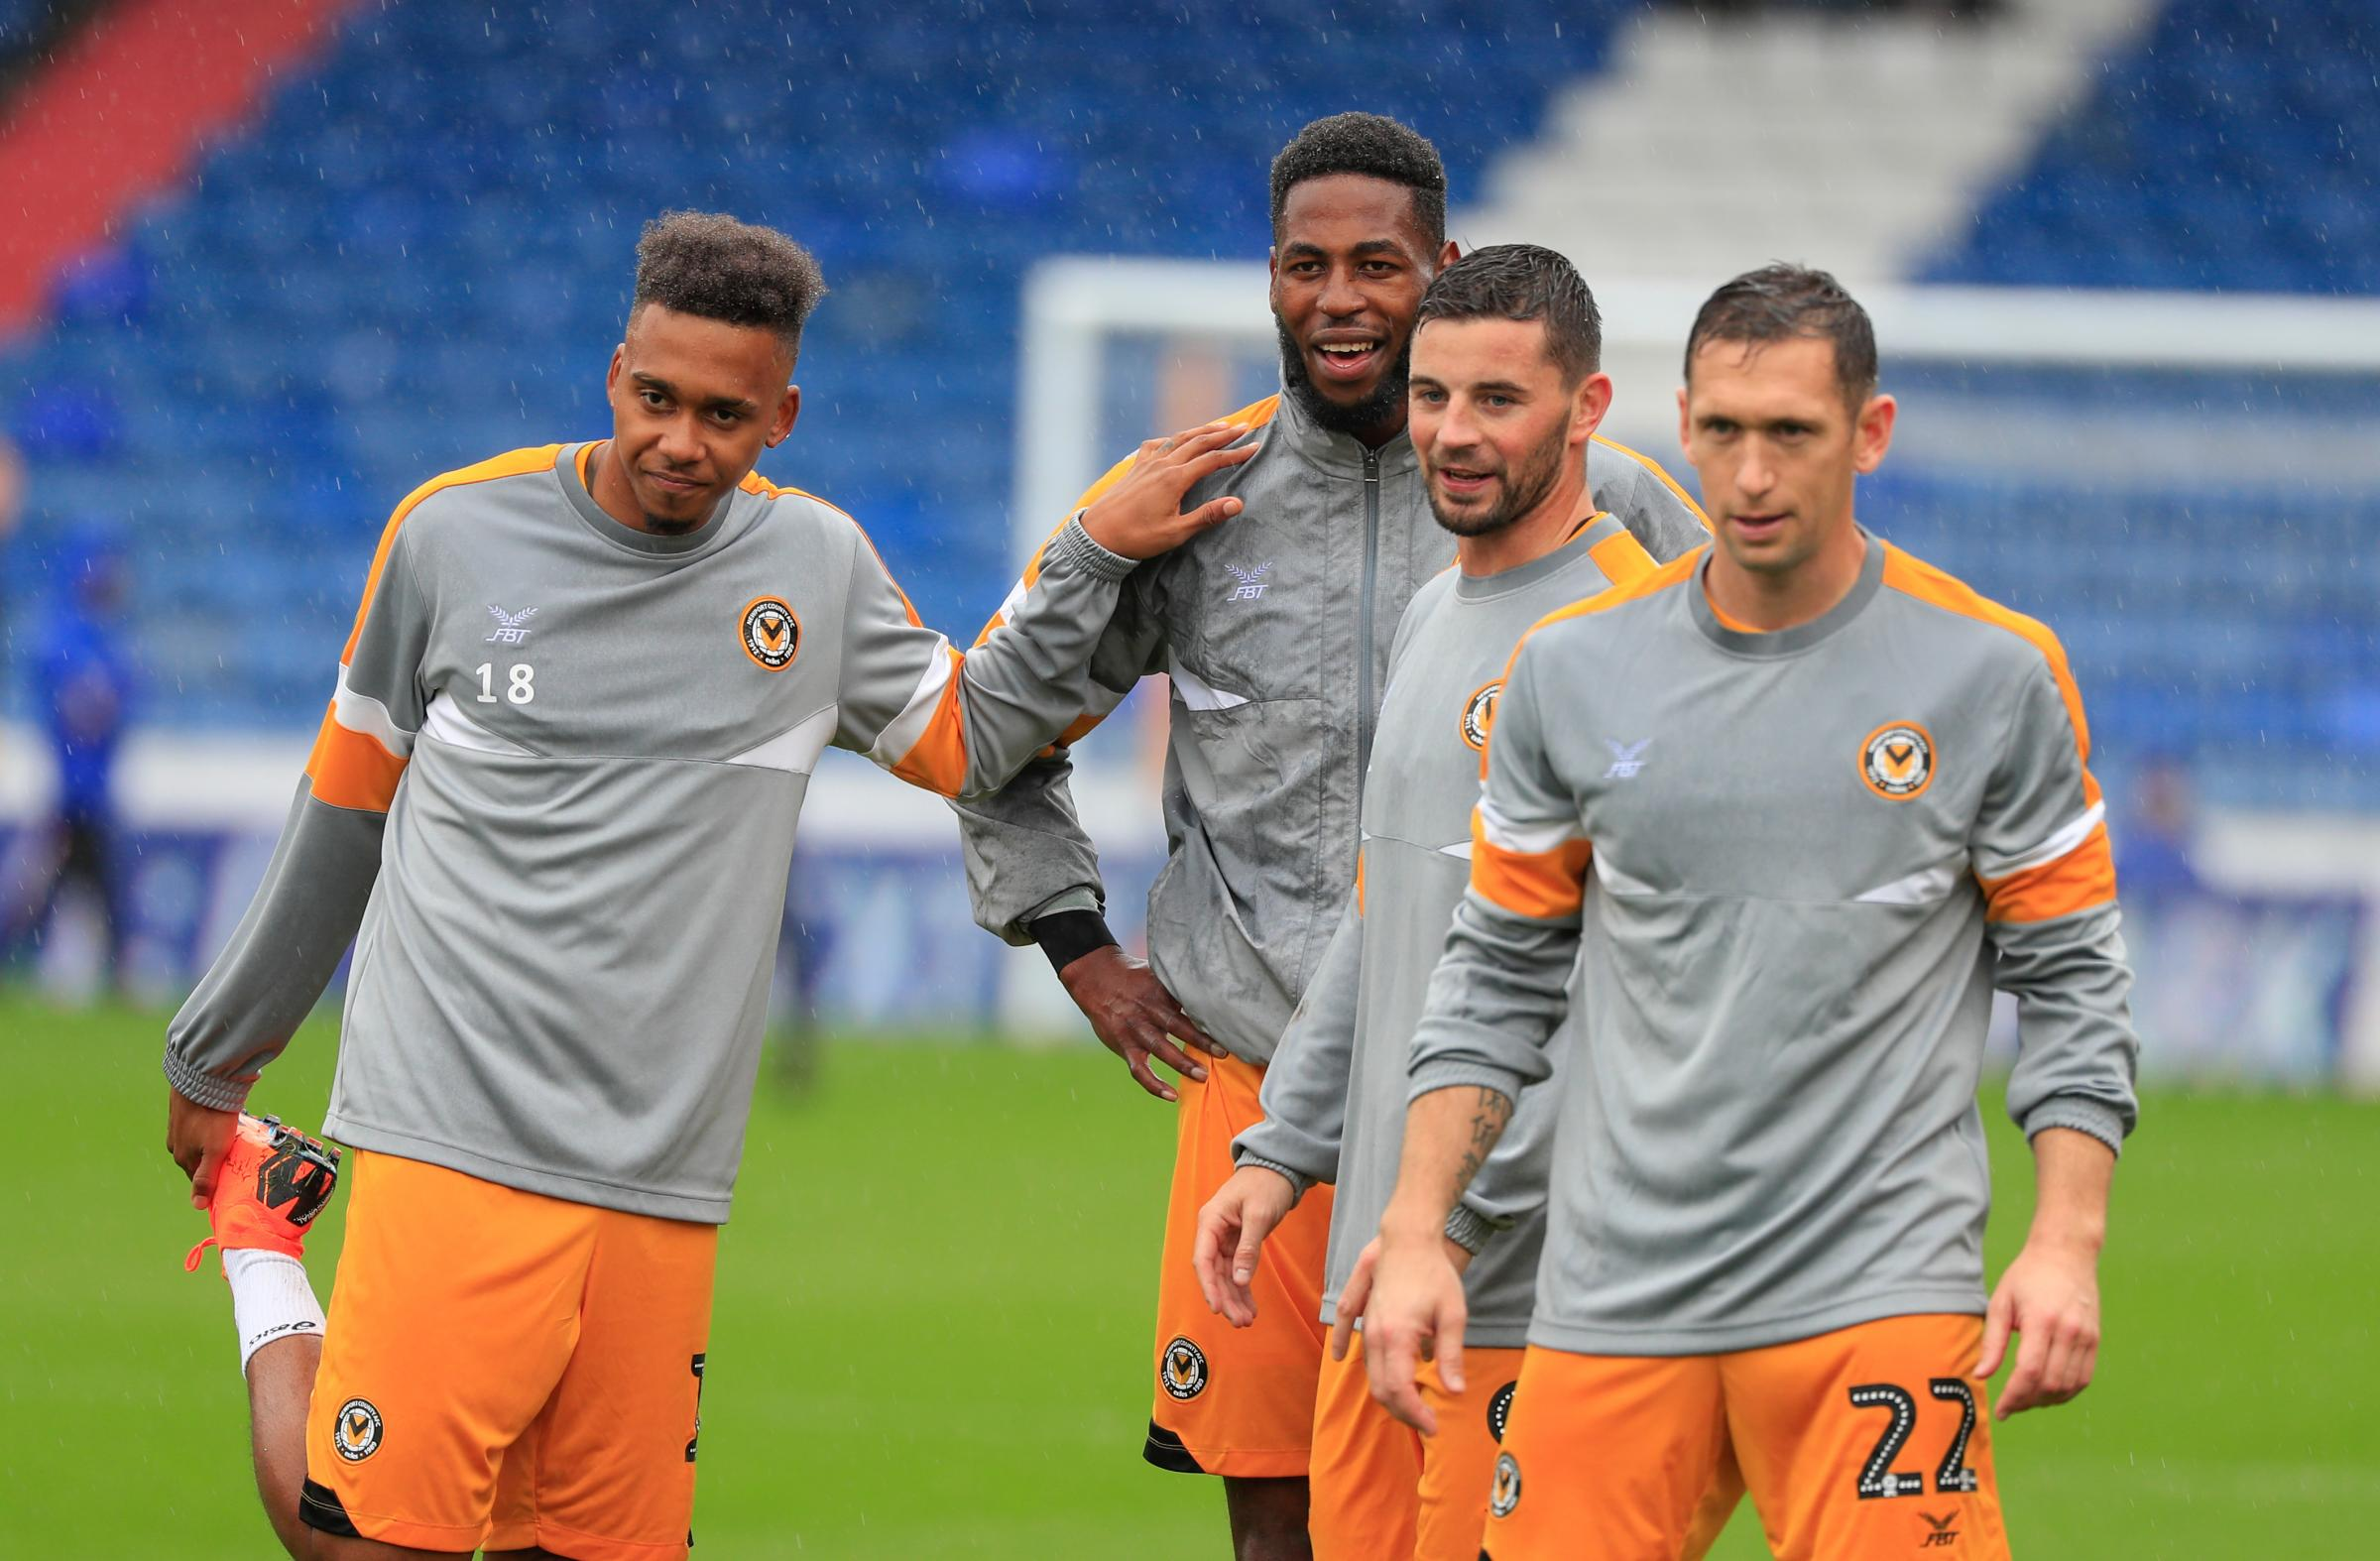 SPIRIT: Newport County forwards Keanu Marsh-Brown, Jamille Matt and Padraig Amond with captain Andrew Crofts at Boundary Park on Saturday